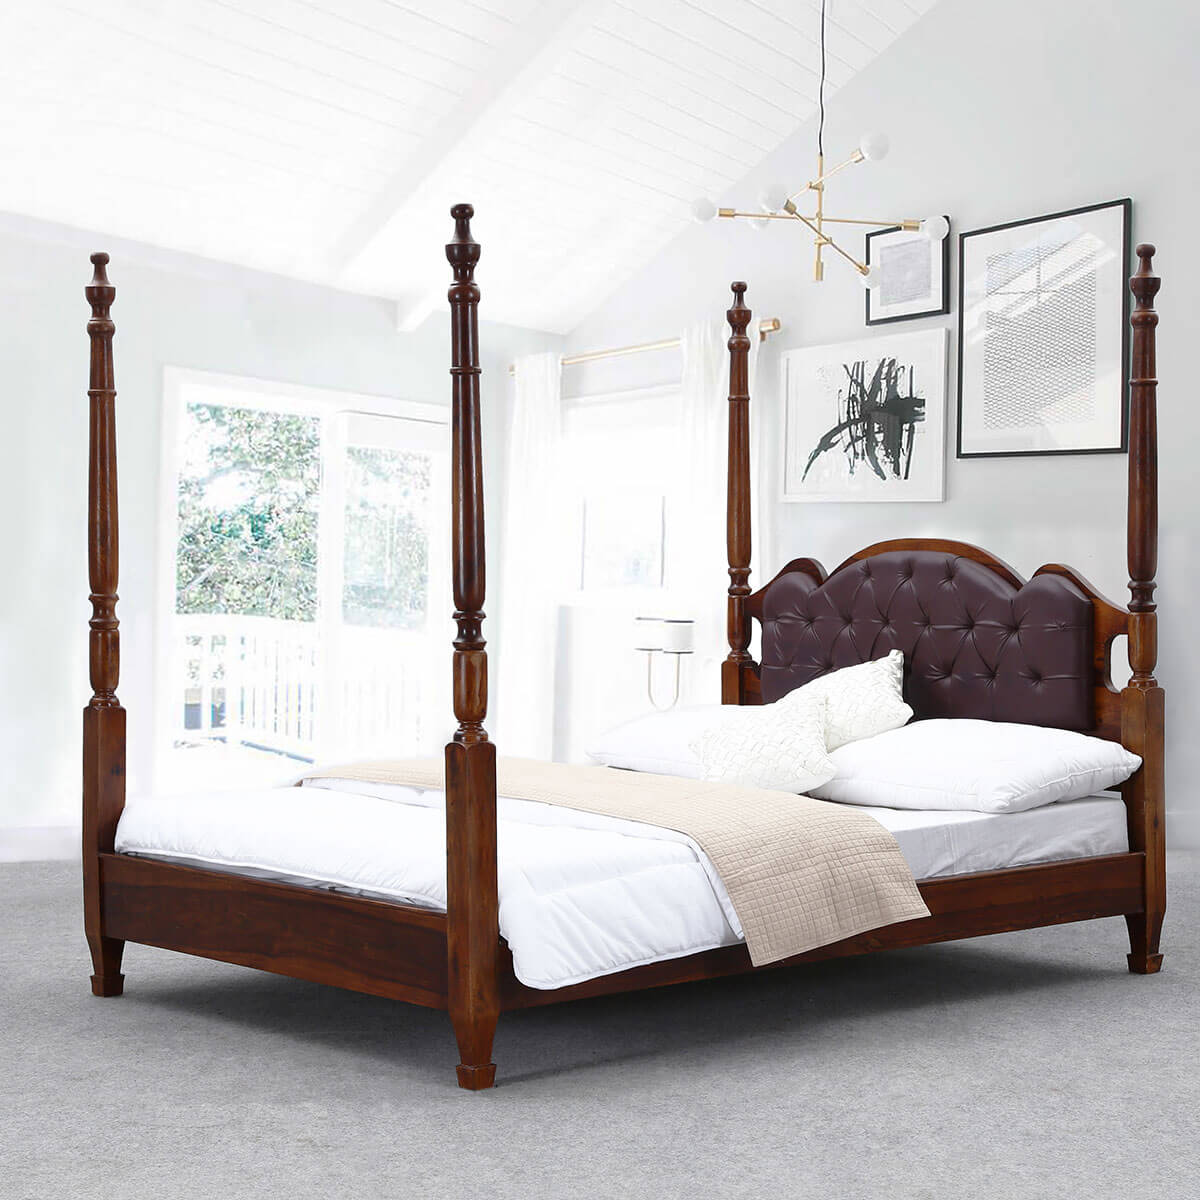 Cal King Bed Size Of Four Poster Cal King Size Bed Frame English Tudor Solid